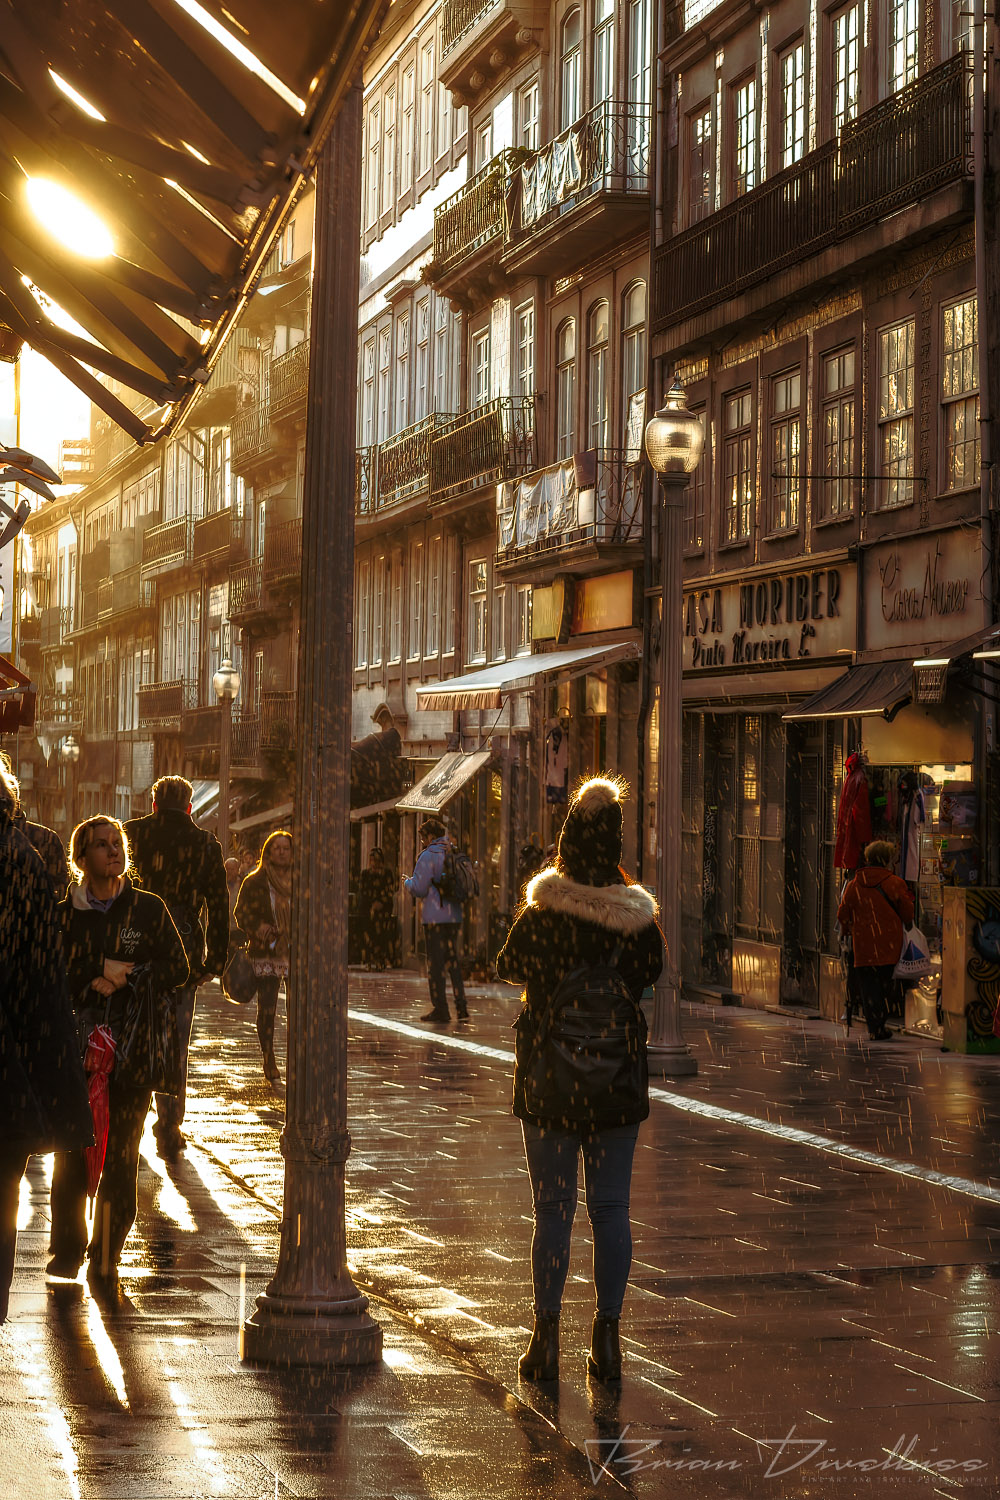 Pedestrians standing in golden light of a rainy day in Porto, Portugal.